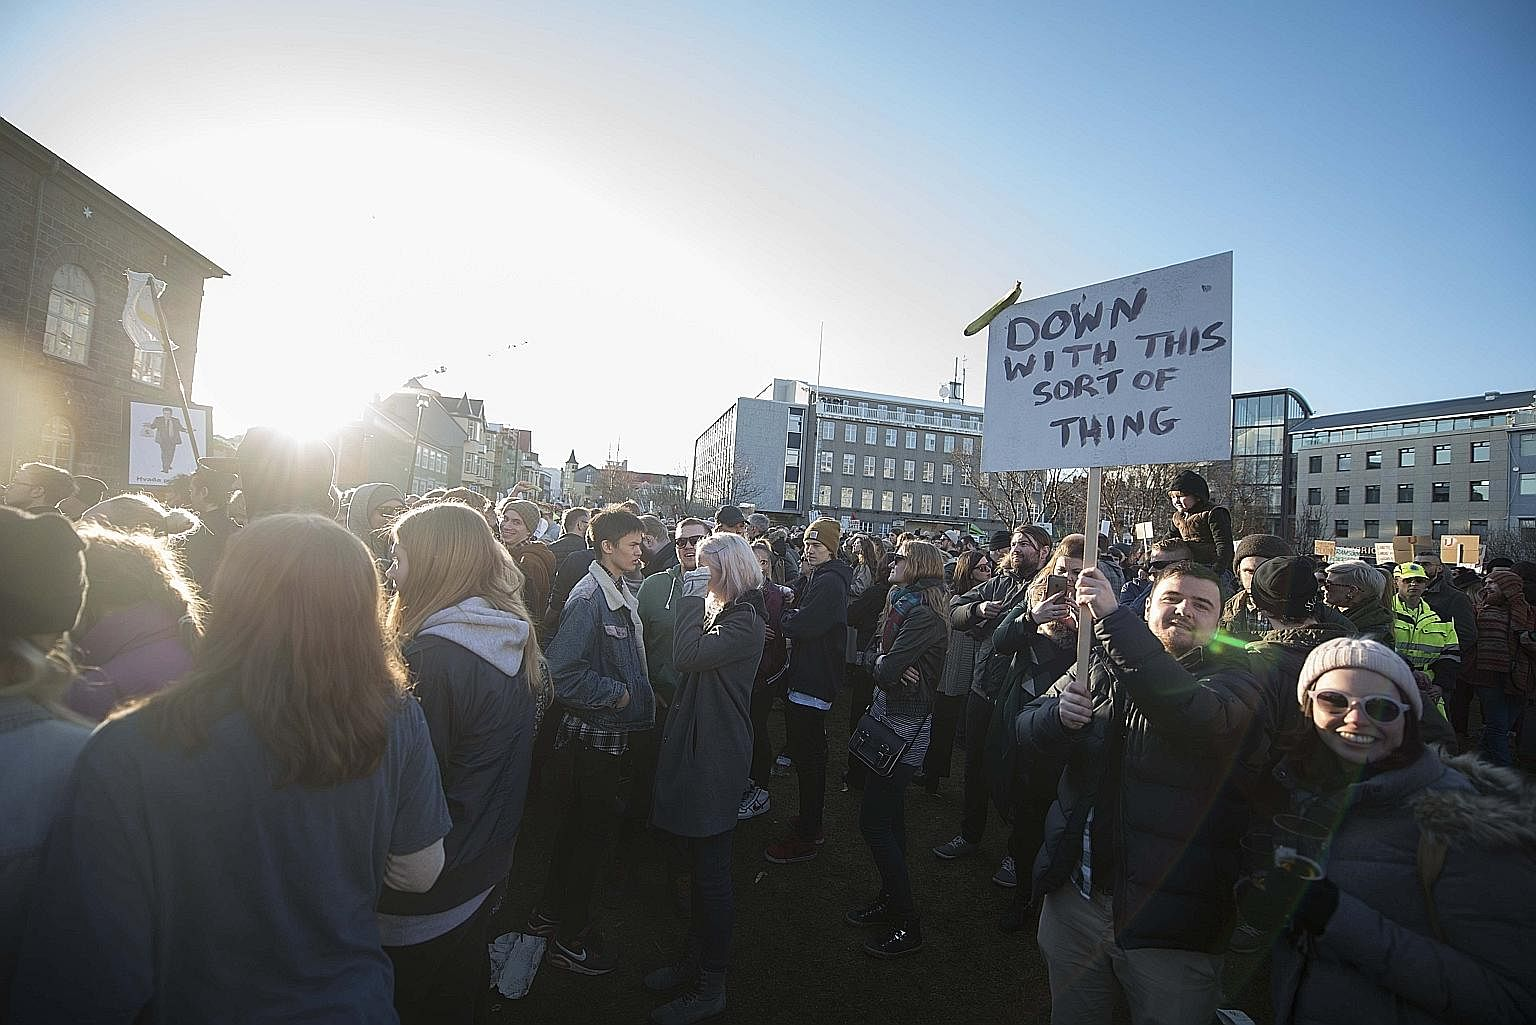 Protesters demanding the resignation of Iceland's Prime Minister Sigmundur David Gunnlaugsson outside Parliament in Reykjavik on Monday after the Panama Papers showed that he and his wife used an offshore firm to allegedly hide million-dollar investm